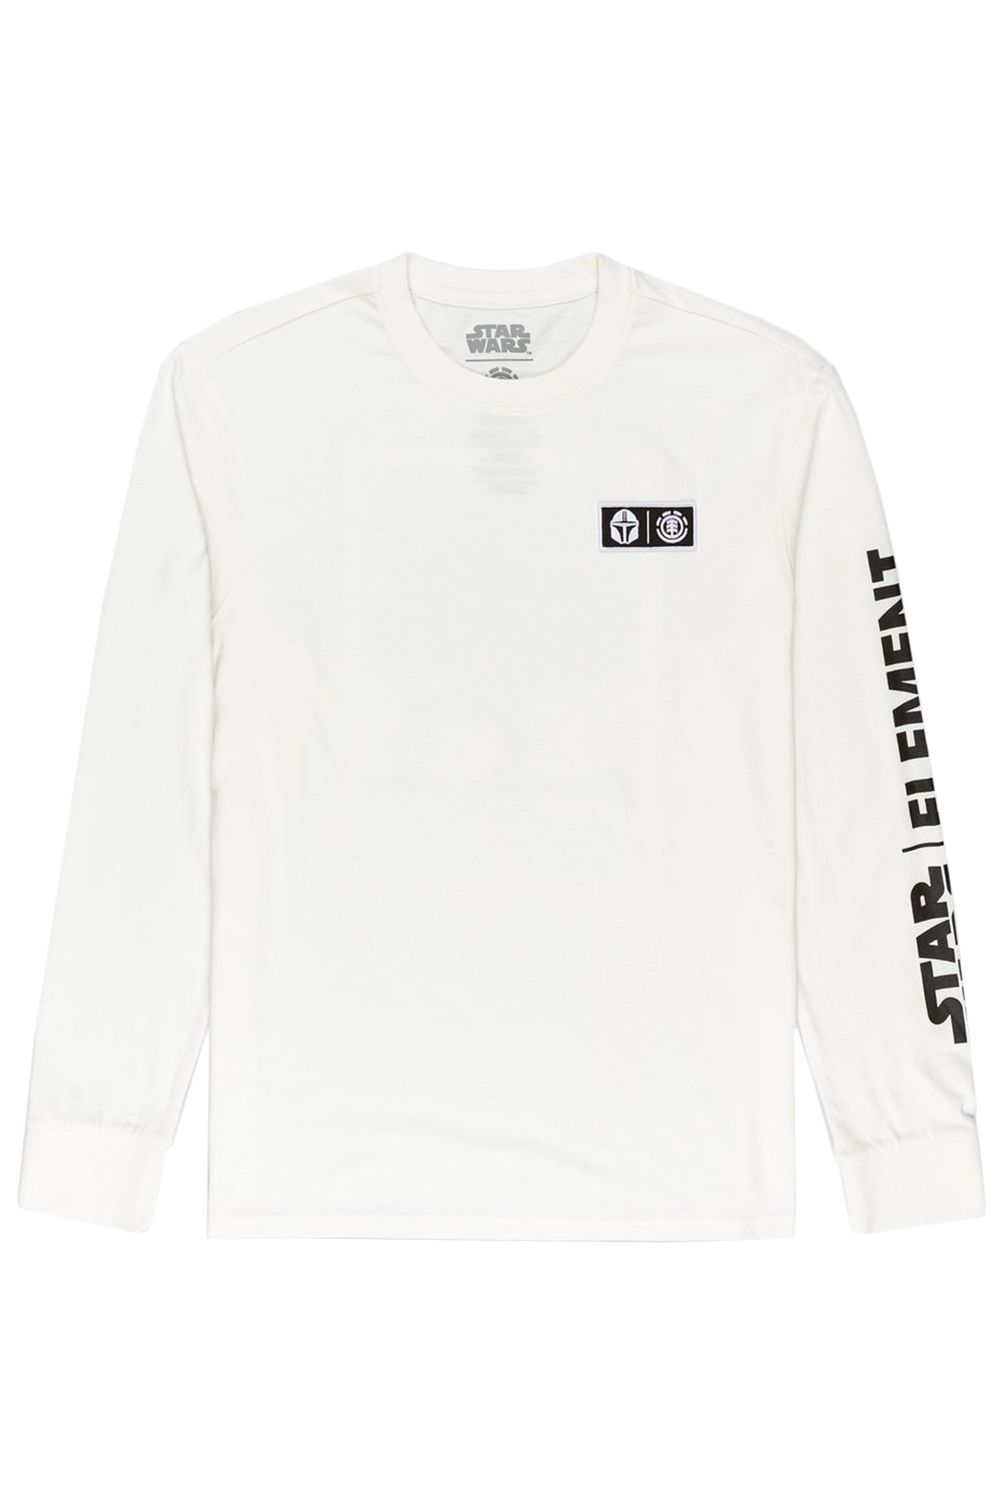 L-Sleeve Element STAR WARS X ELEMENT Off White